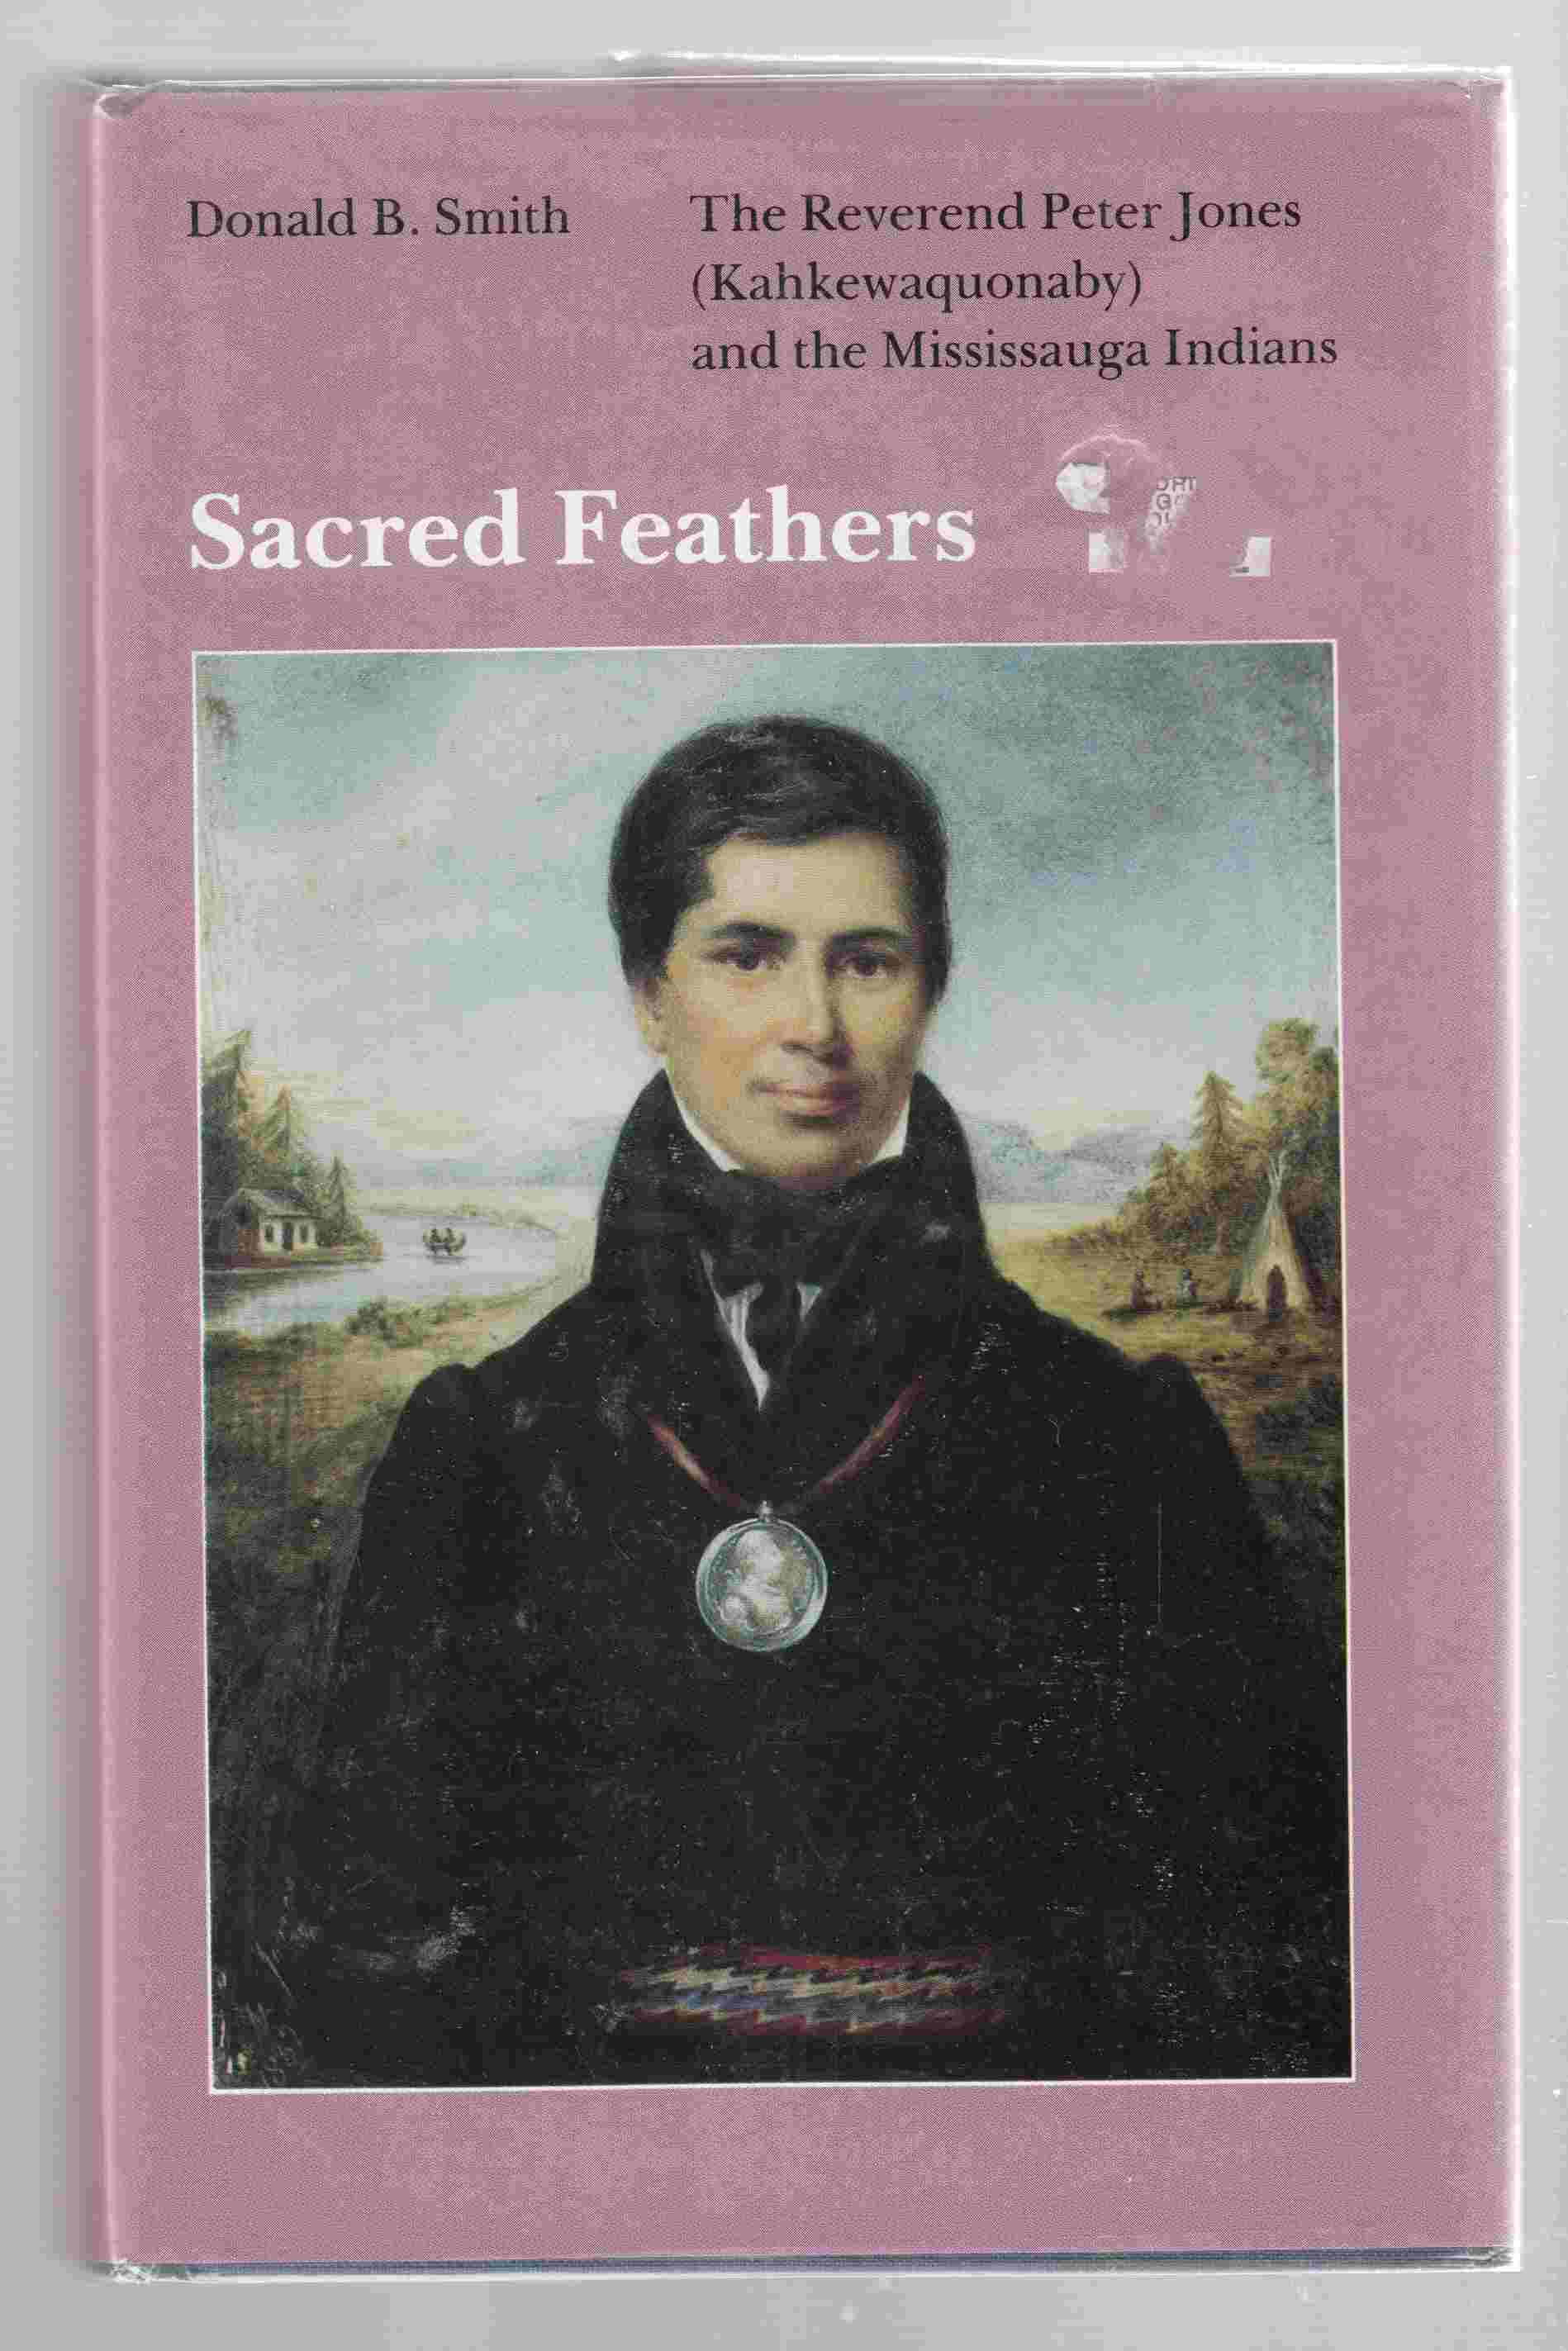 Image for Sacred Feathers The Reverend Peter Jones (Kahkewaquonaby) and the Mississauga Indians